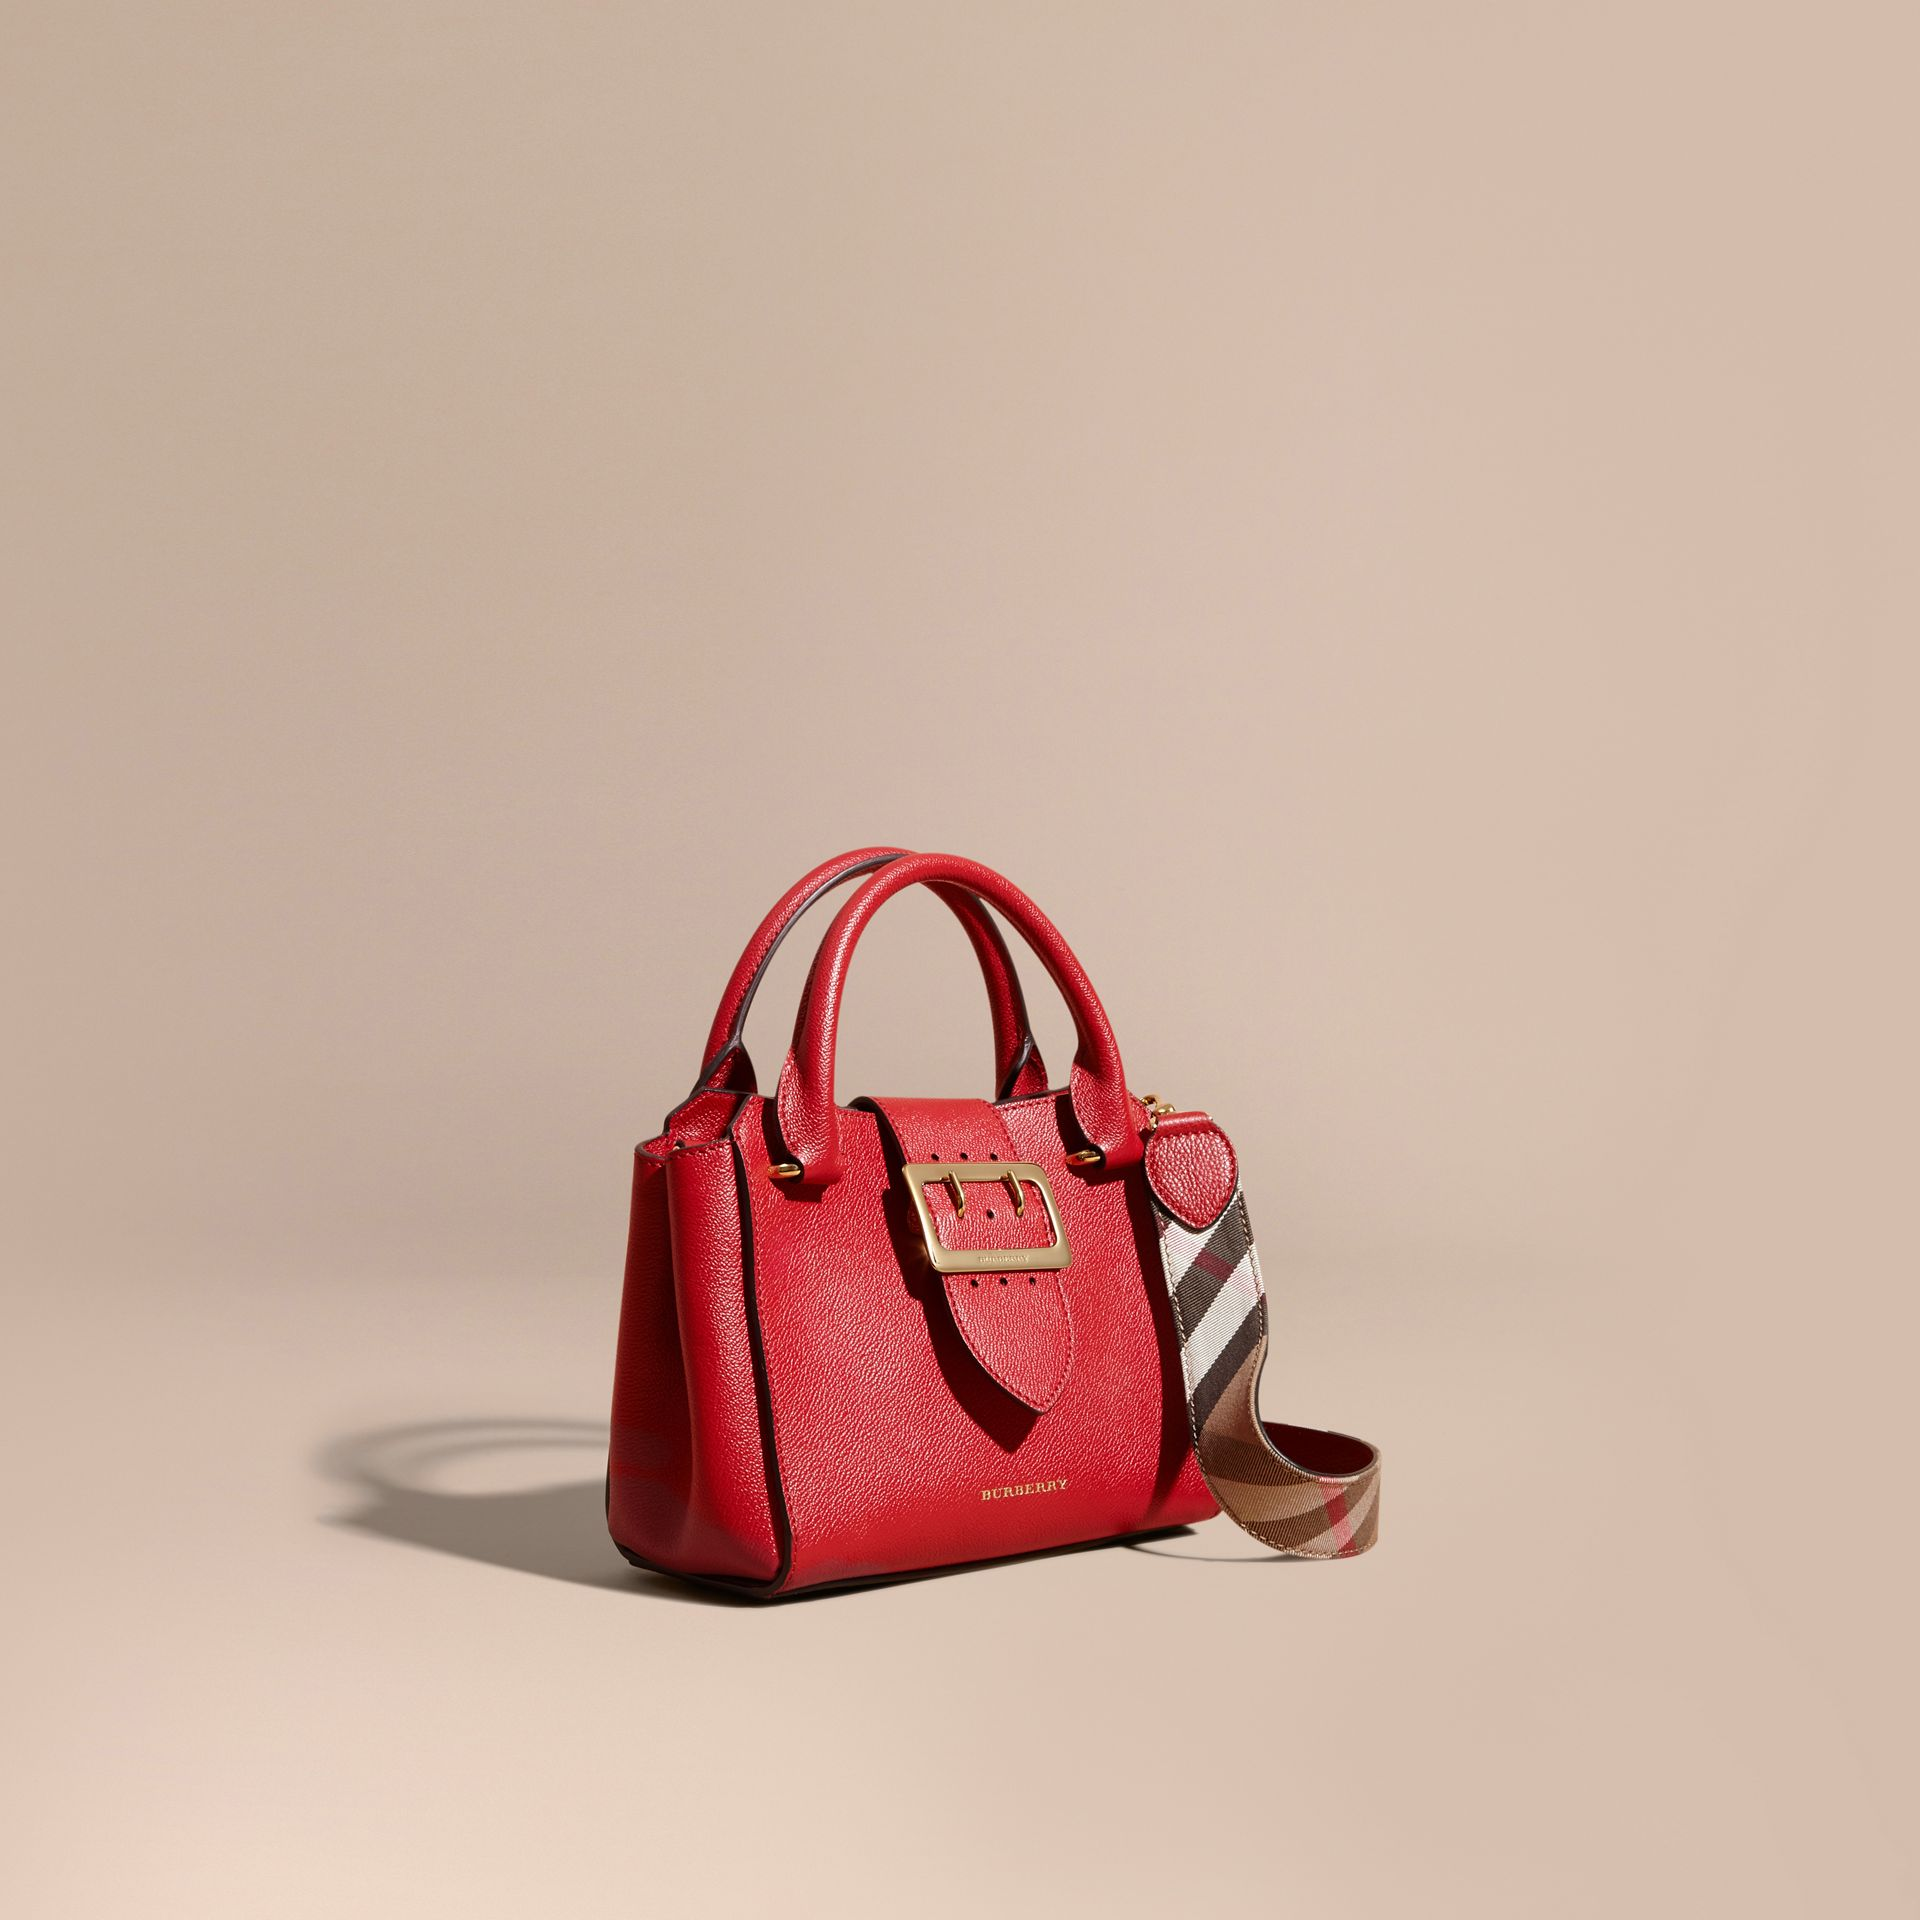 Parade red The Small Buckle Tote in Grainy Leather Parade Red - gallery image 1